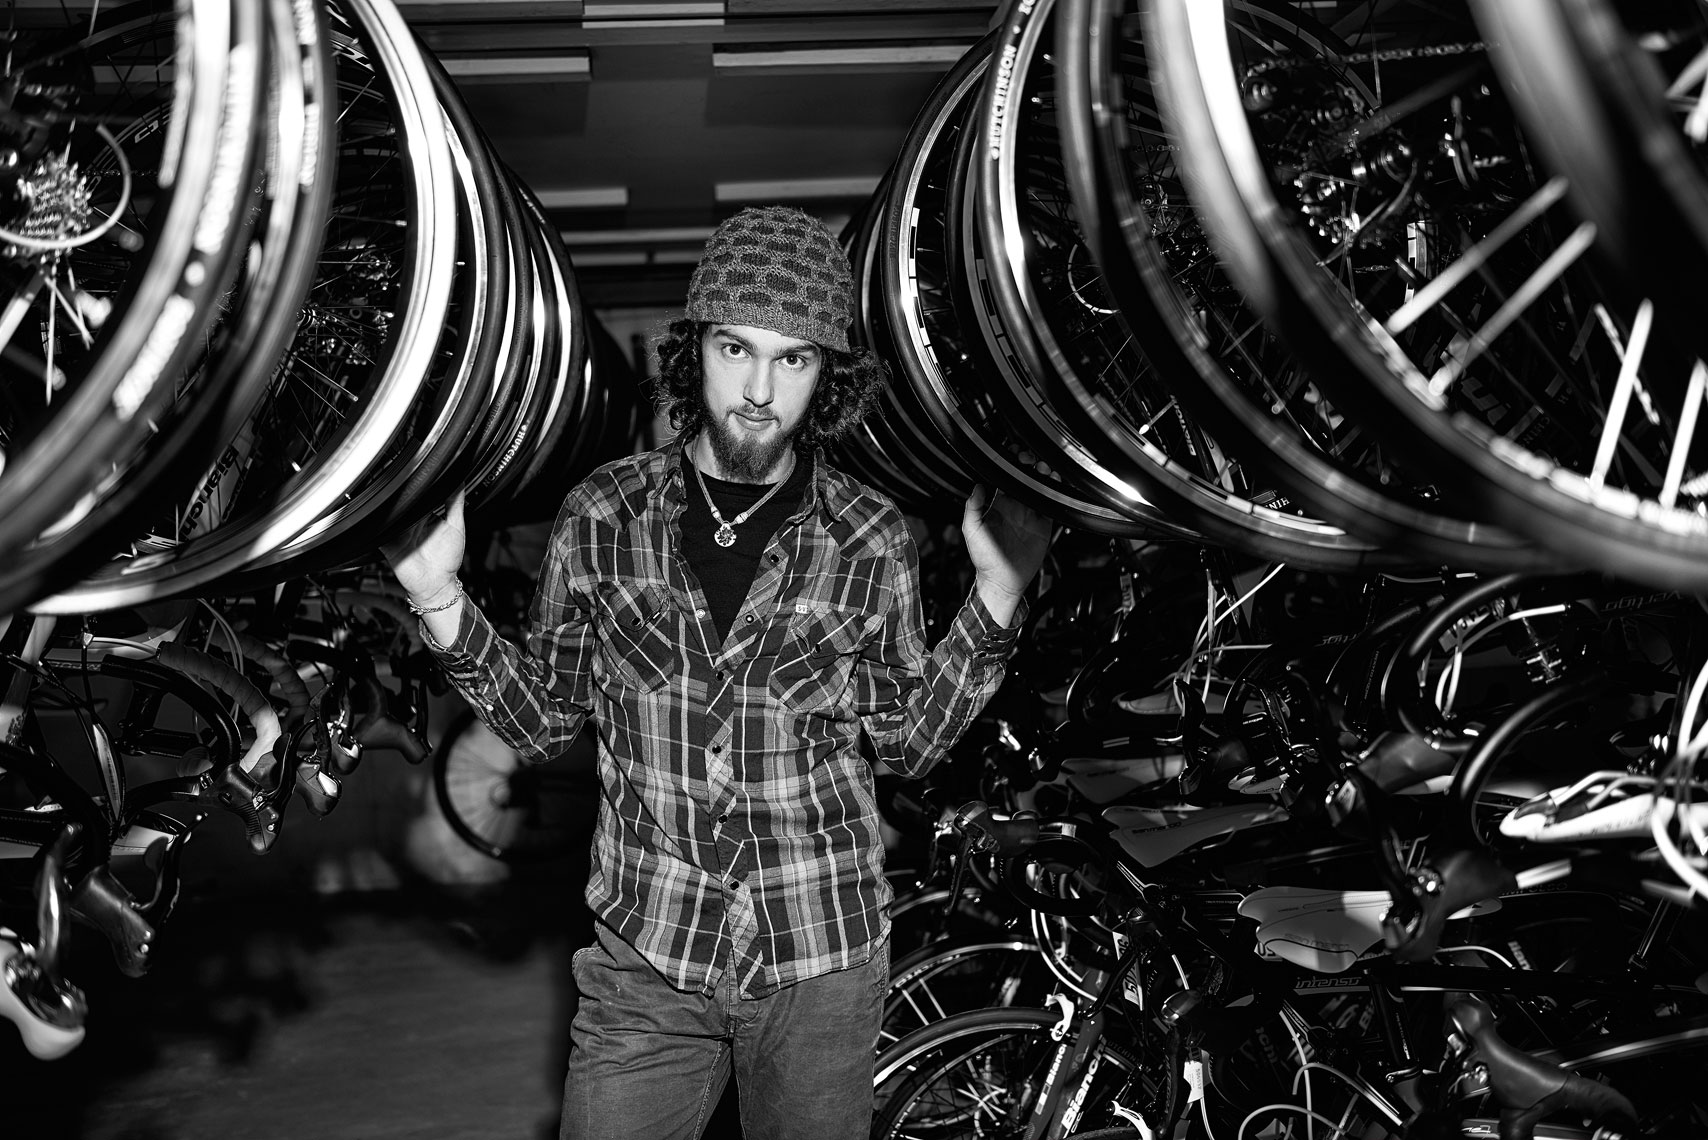 Black and white of a young man in a bike shop millennial beard